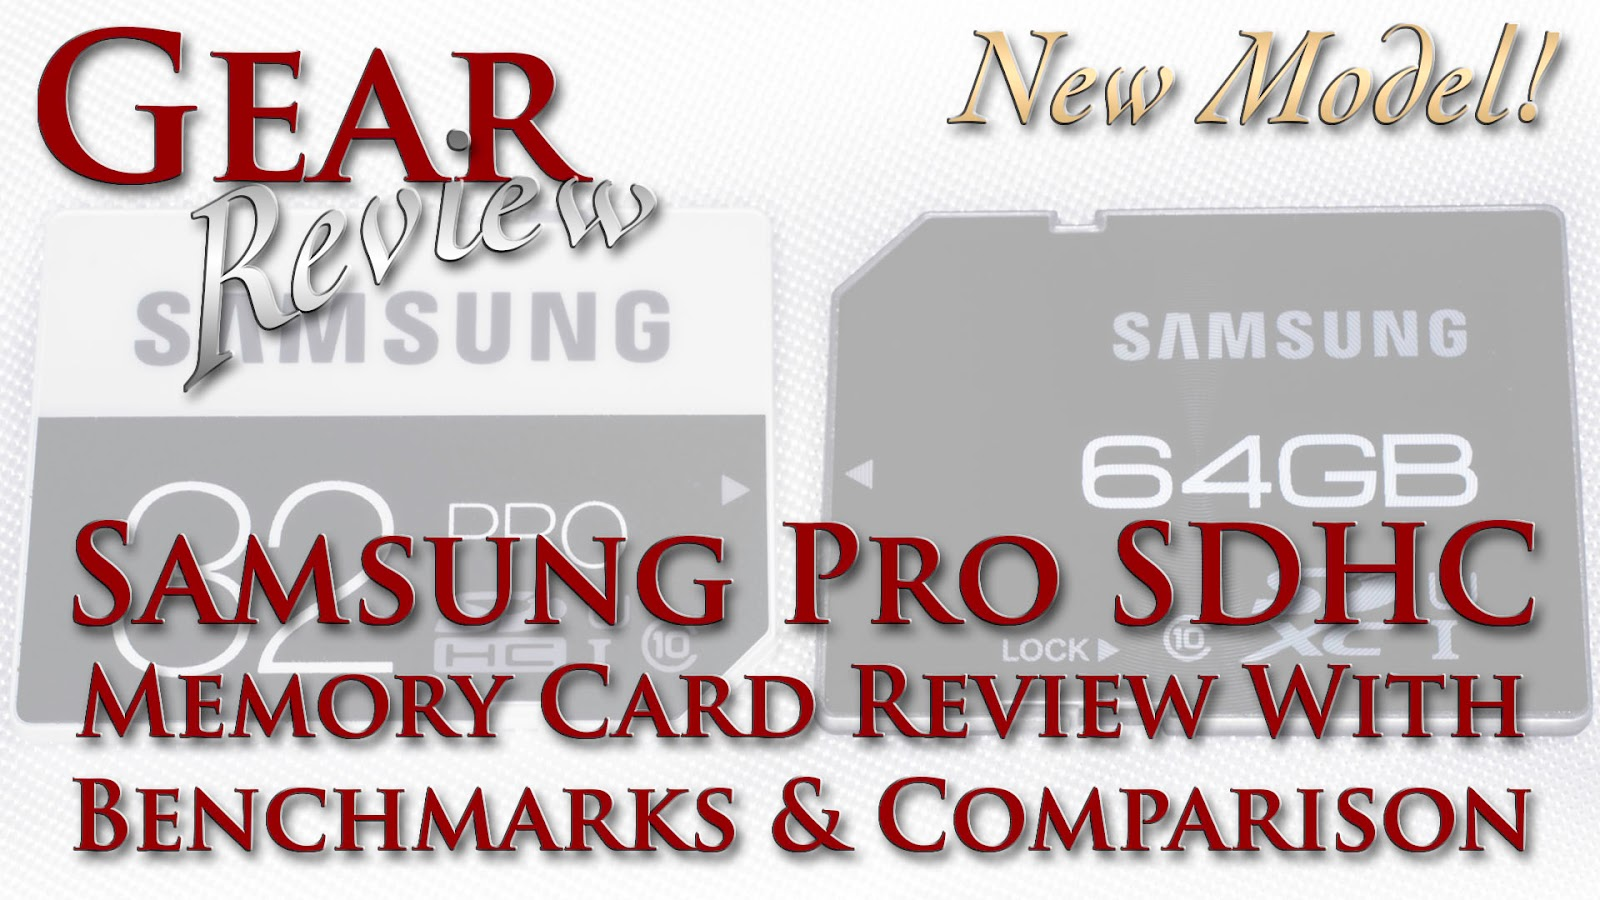 Samsung Pro SDHC Memory Card Review With Benchmarks & Comparison (New White Model)